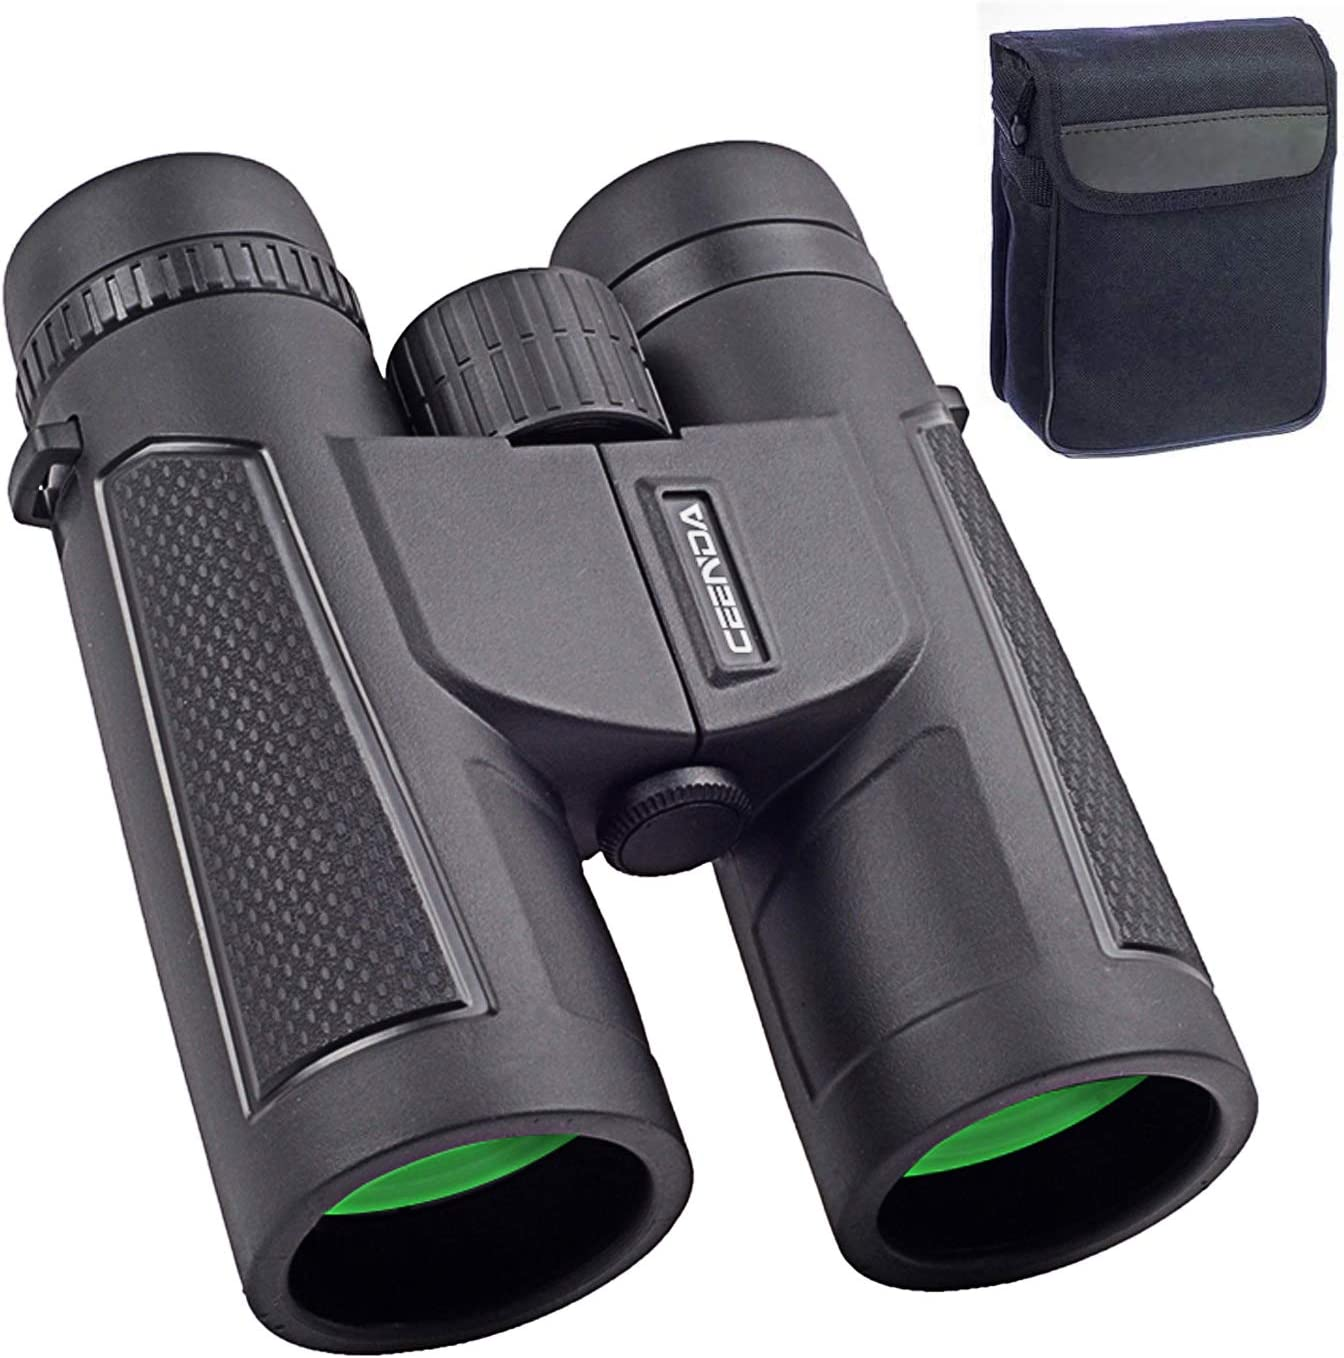 Home HD Binoculars, 12x42 Binoculars for Adults and Kids, Binoculars for Hunting, Binoculars for Bird Watching Travel Concerts Sports Stargazing and Planets-Large Lens BAK4 Prism FMC-with Phone Mount